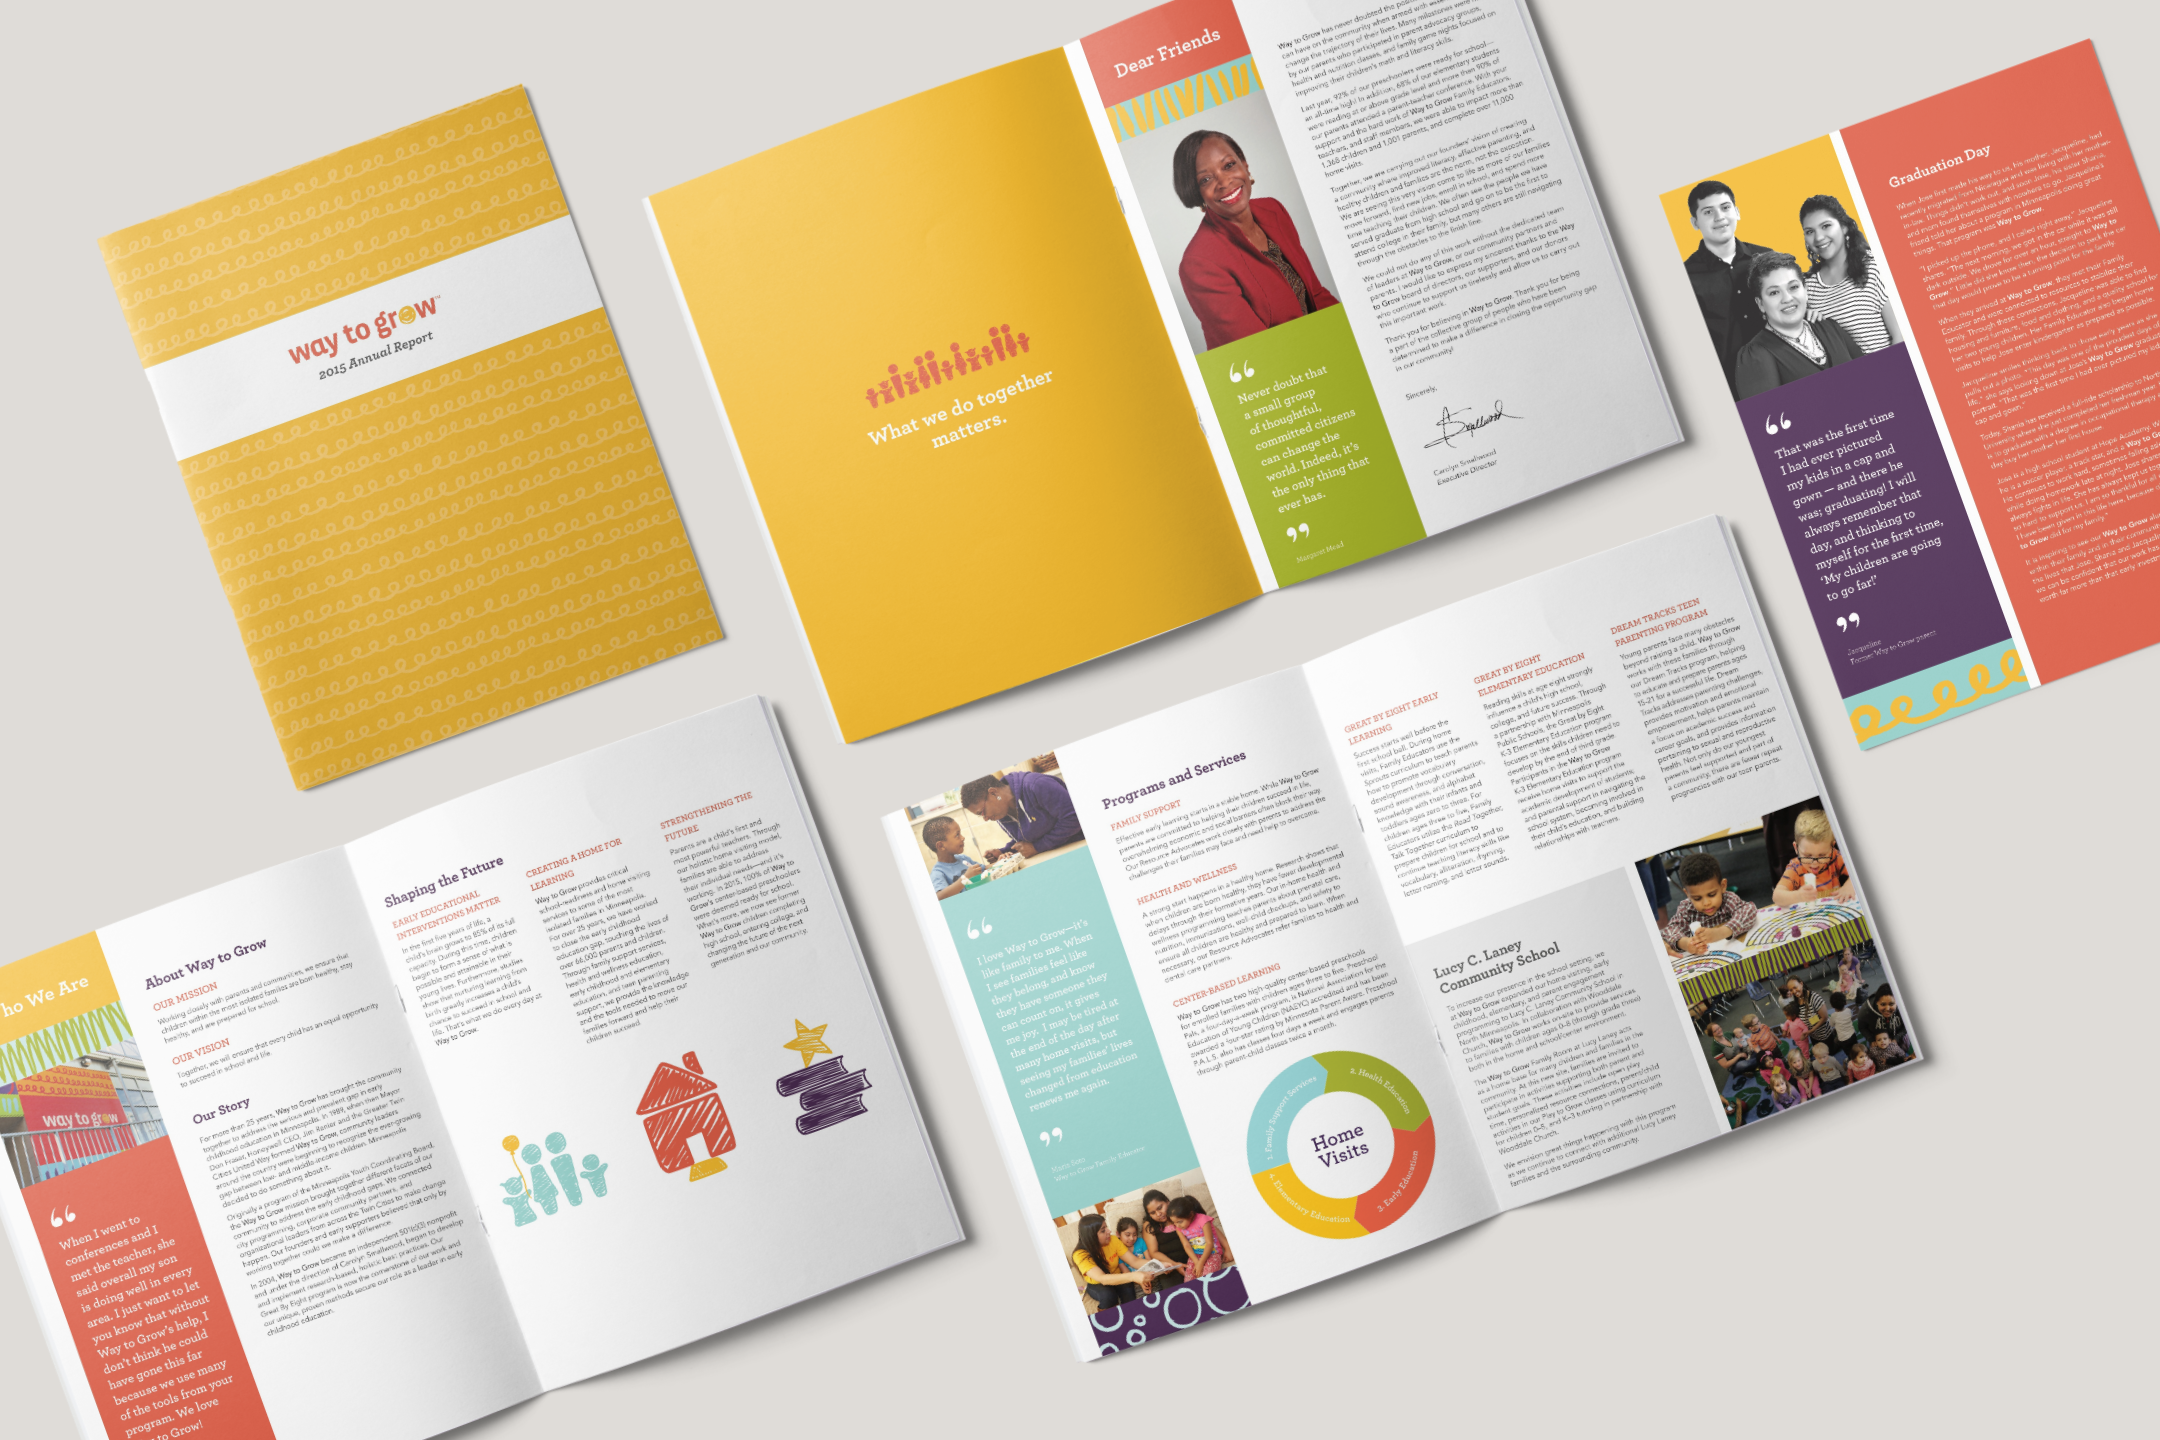 Download the 2015 Annual Report.